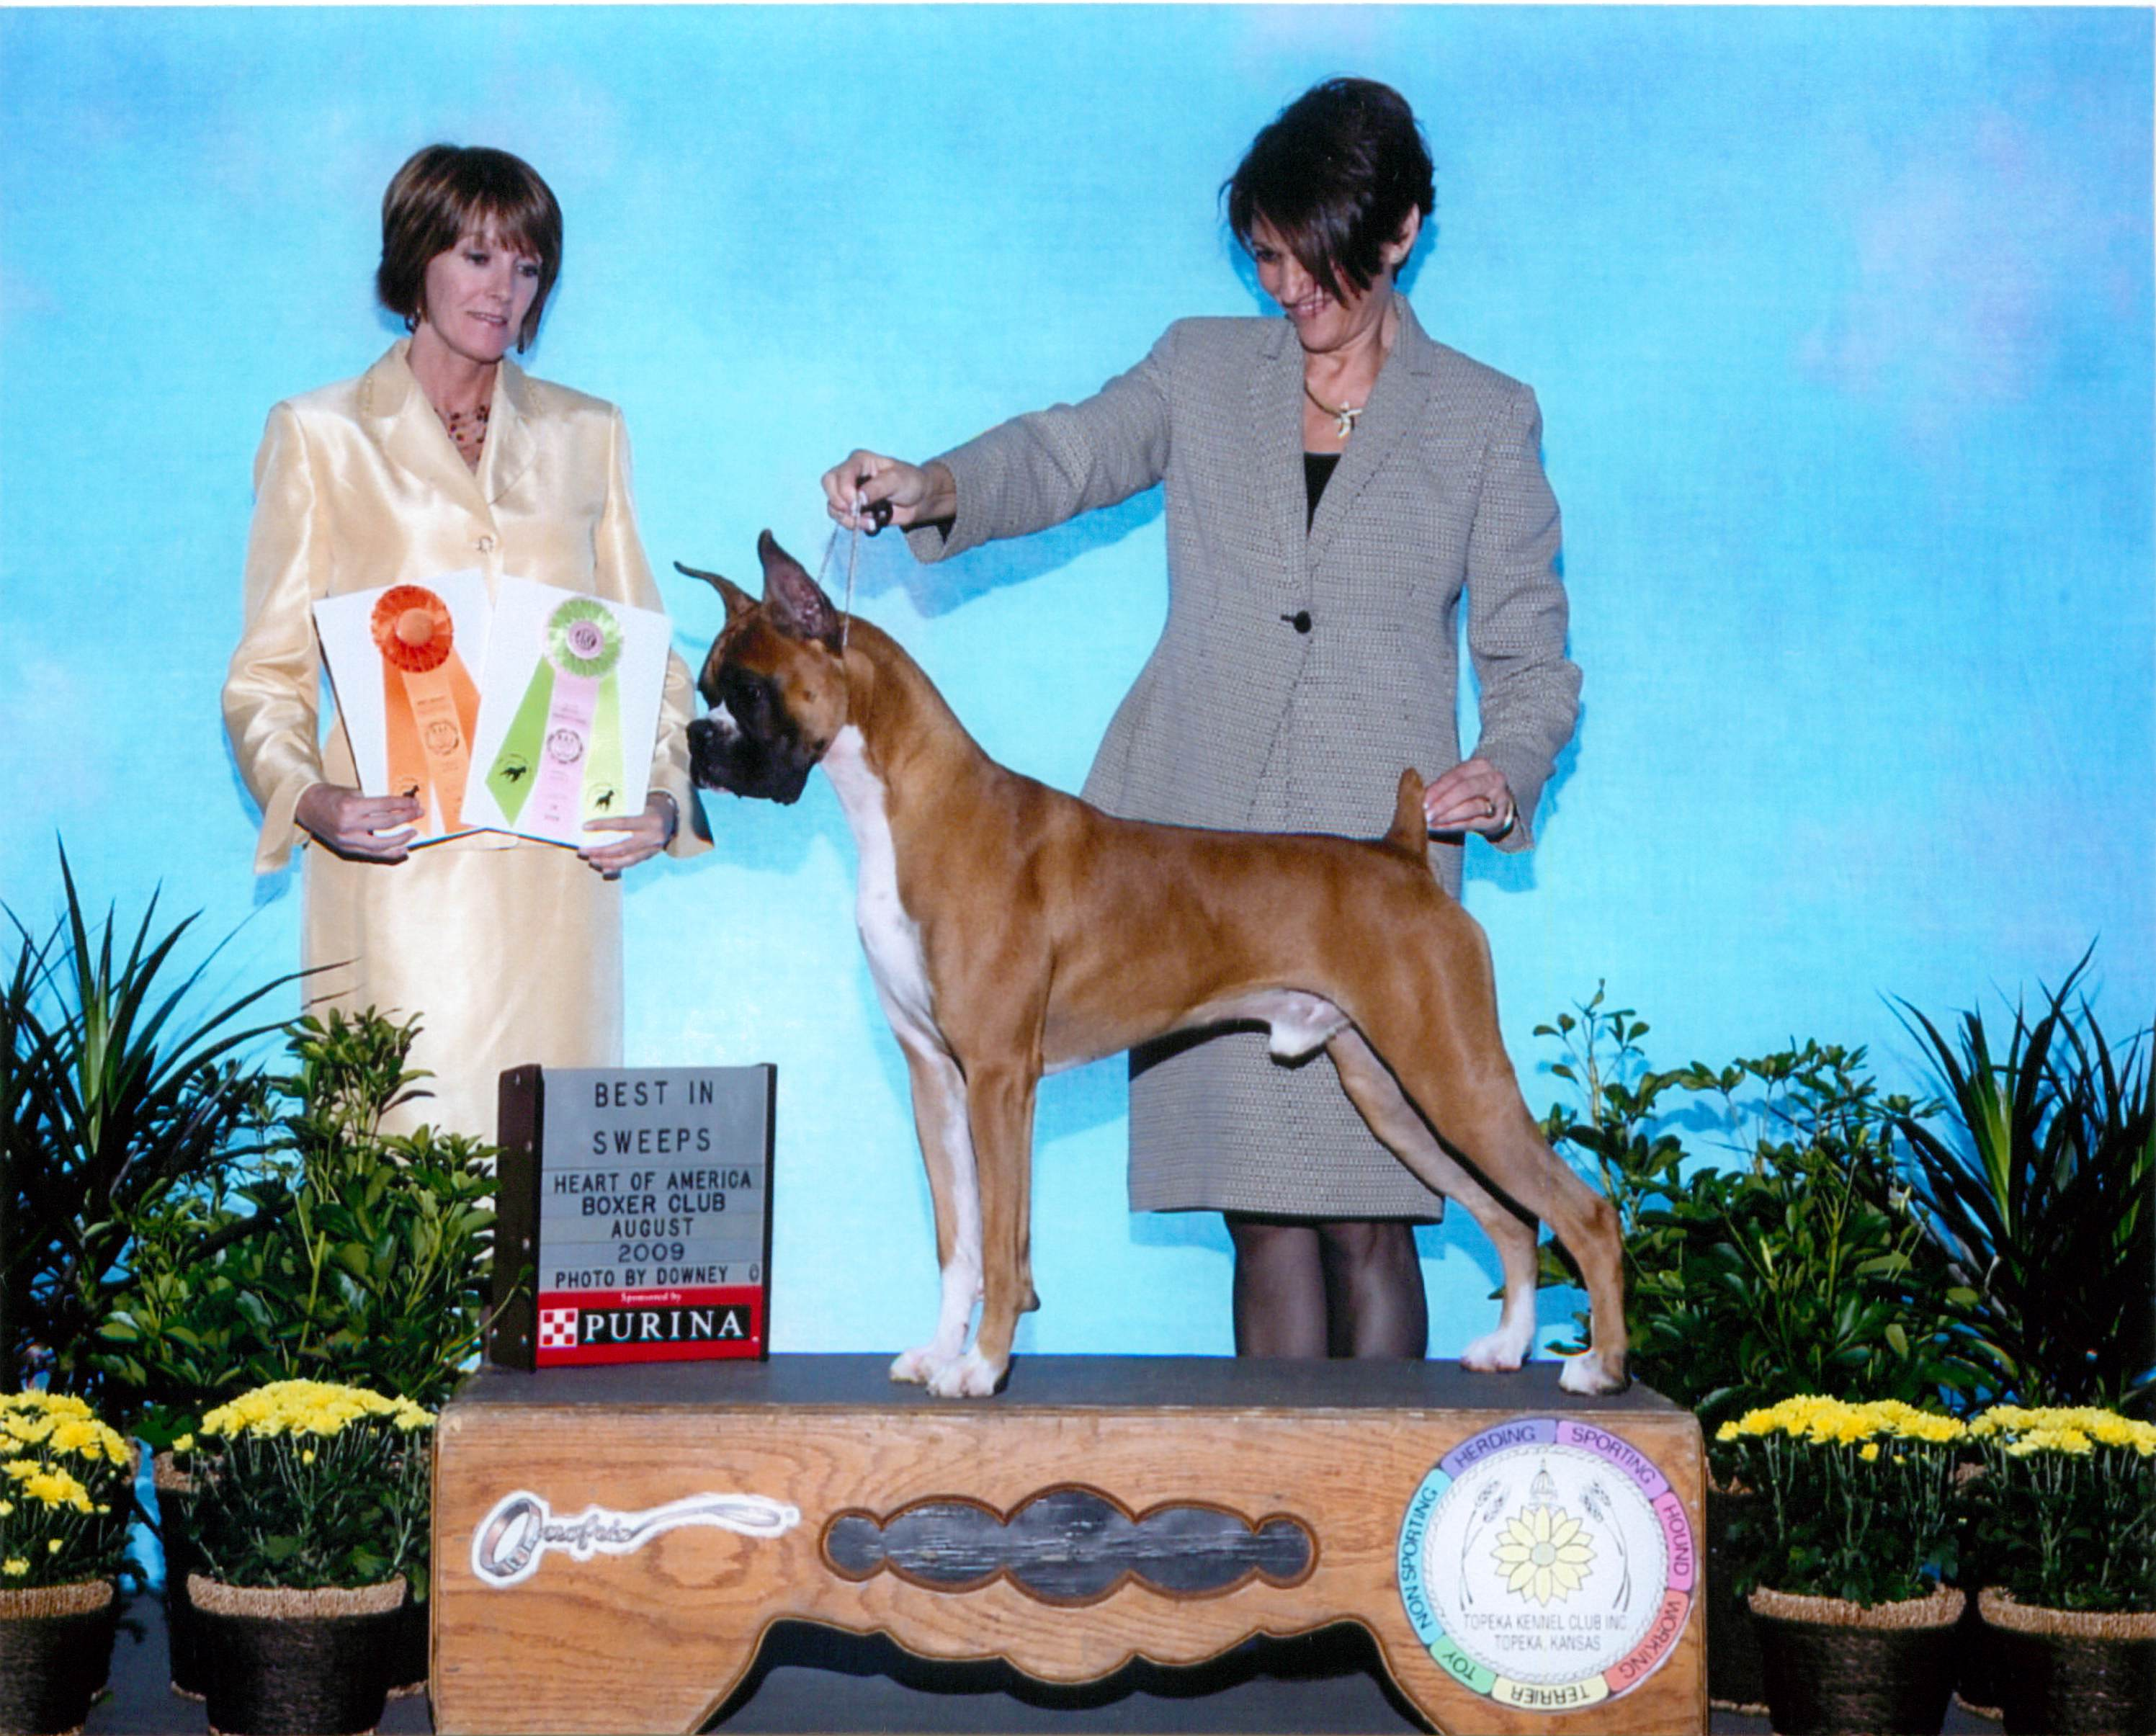 Grand Sweepstakes, Best Junior @ 2009 Specialty Show #2